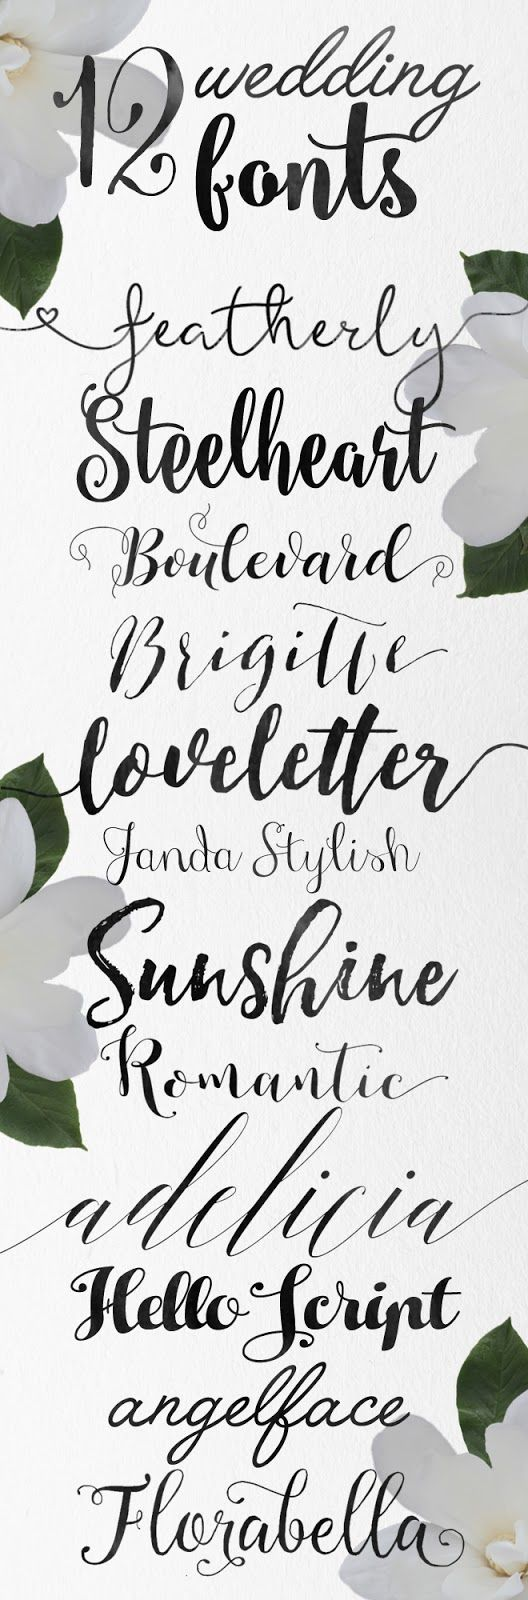 Wedding fonts fonts and calligraphy on pinterest Calligraphy scripts